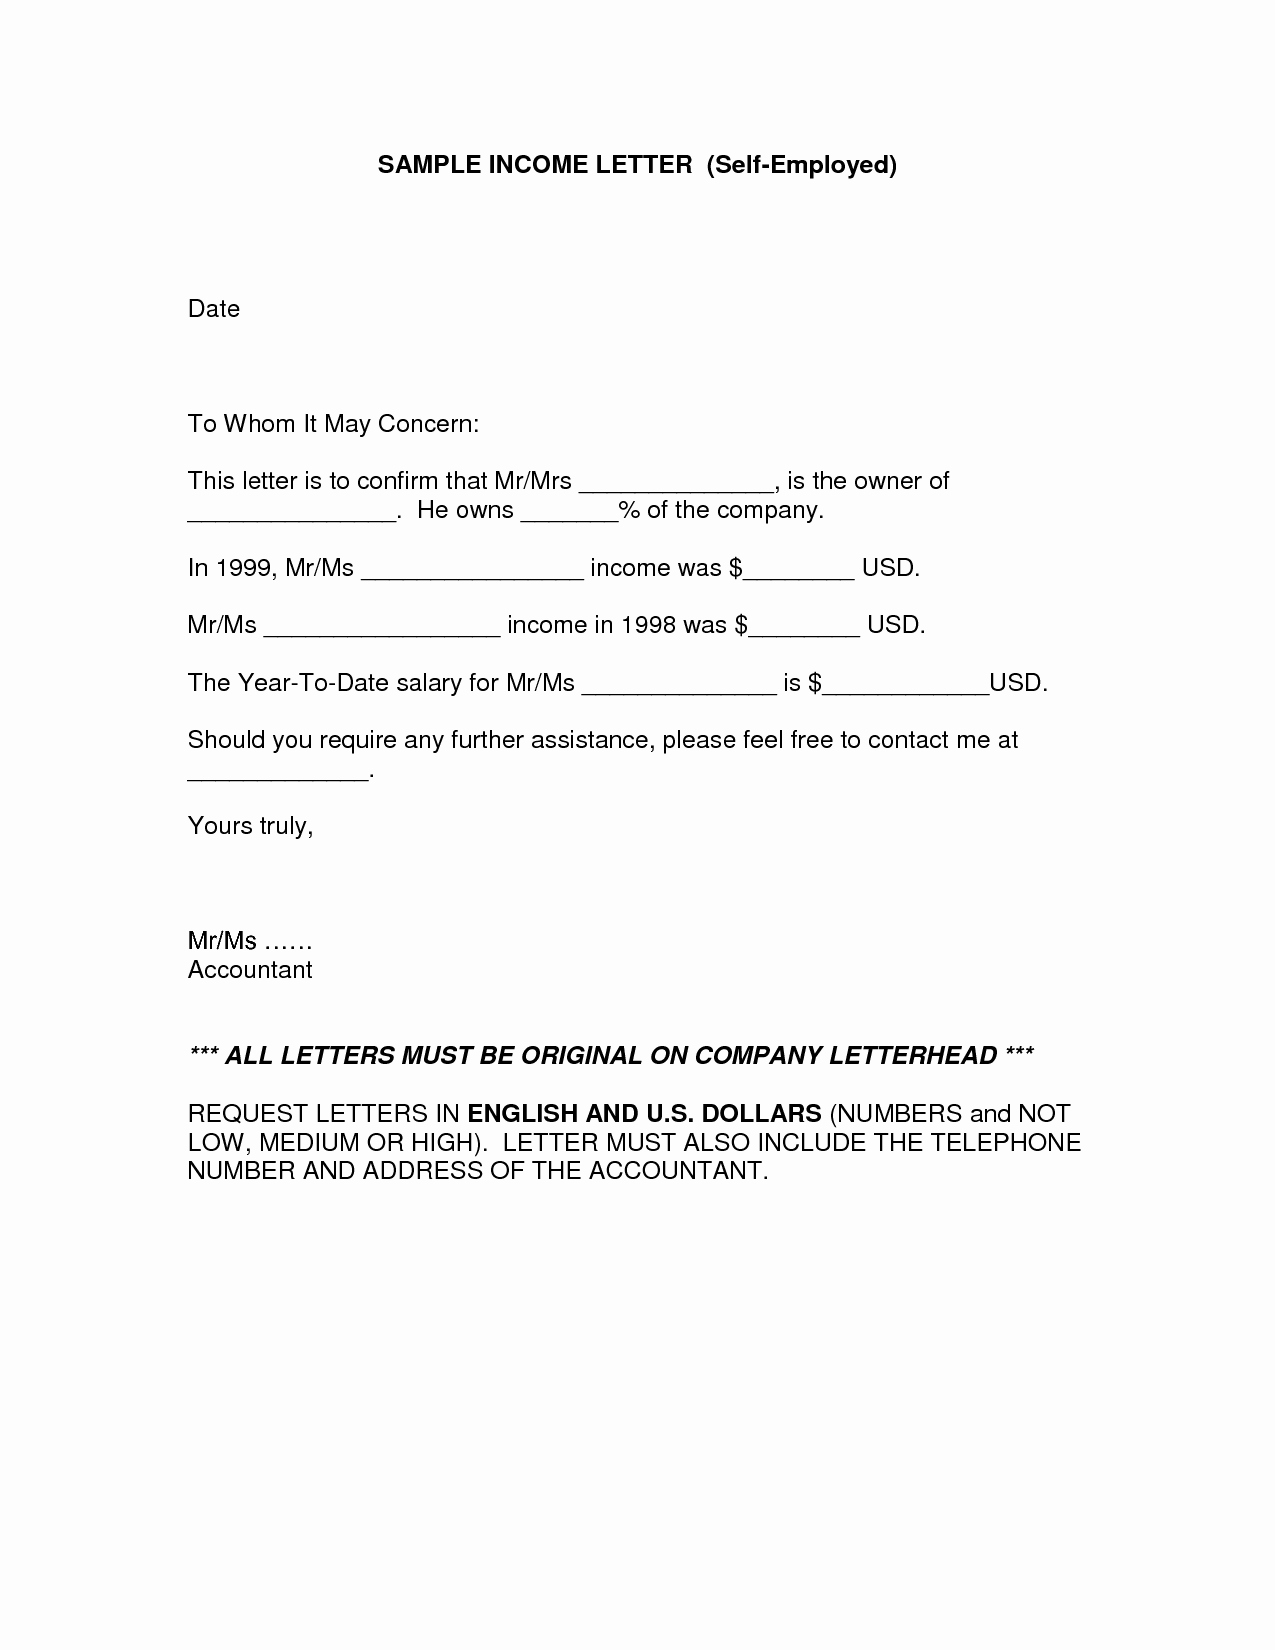 Letter Of Income From Employer Luxury In E Verification Letter for Self Employed